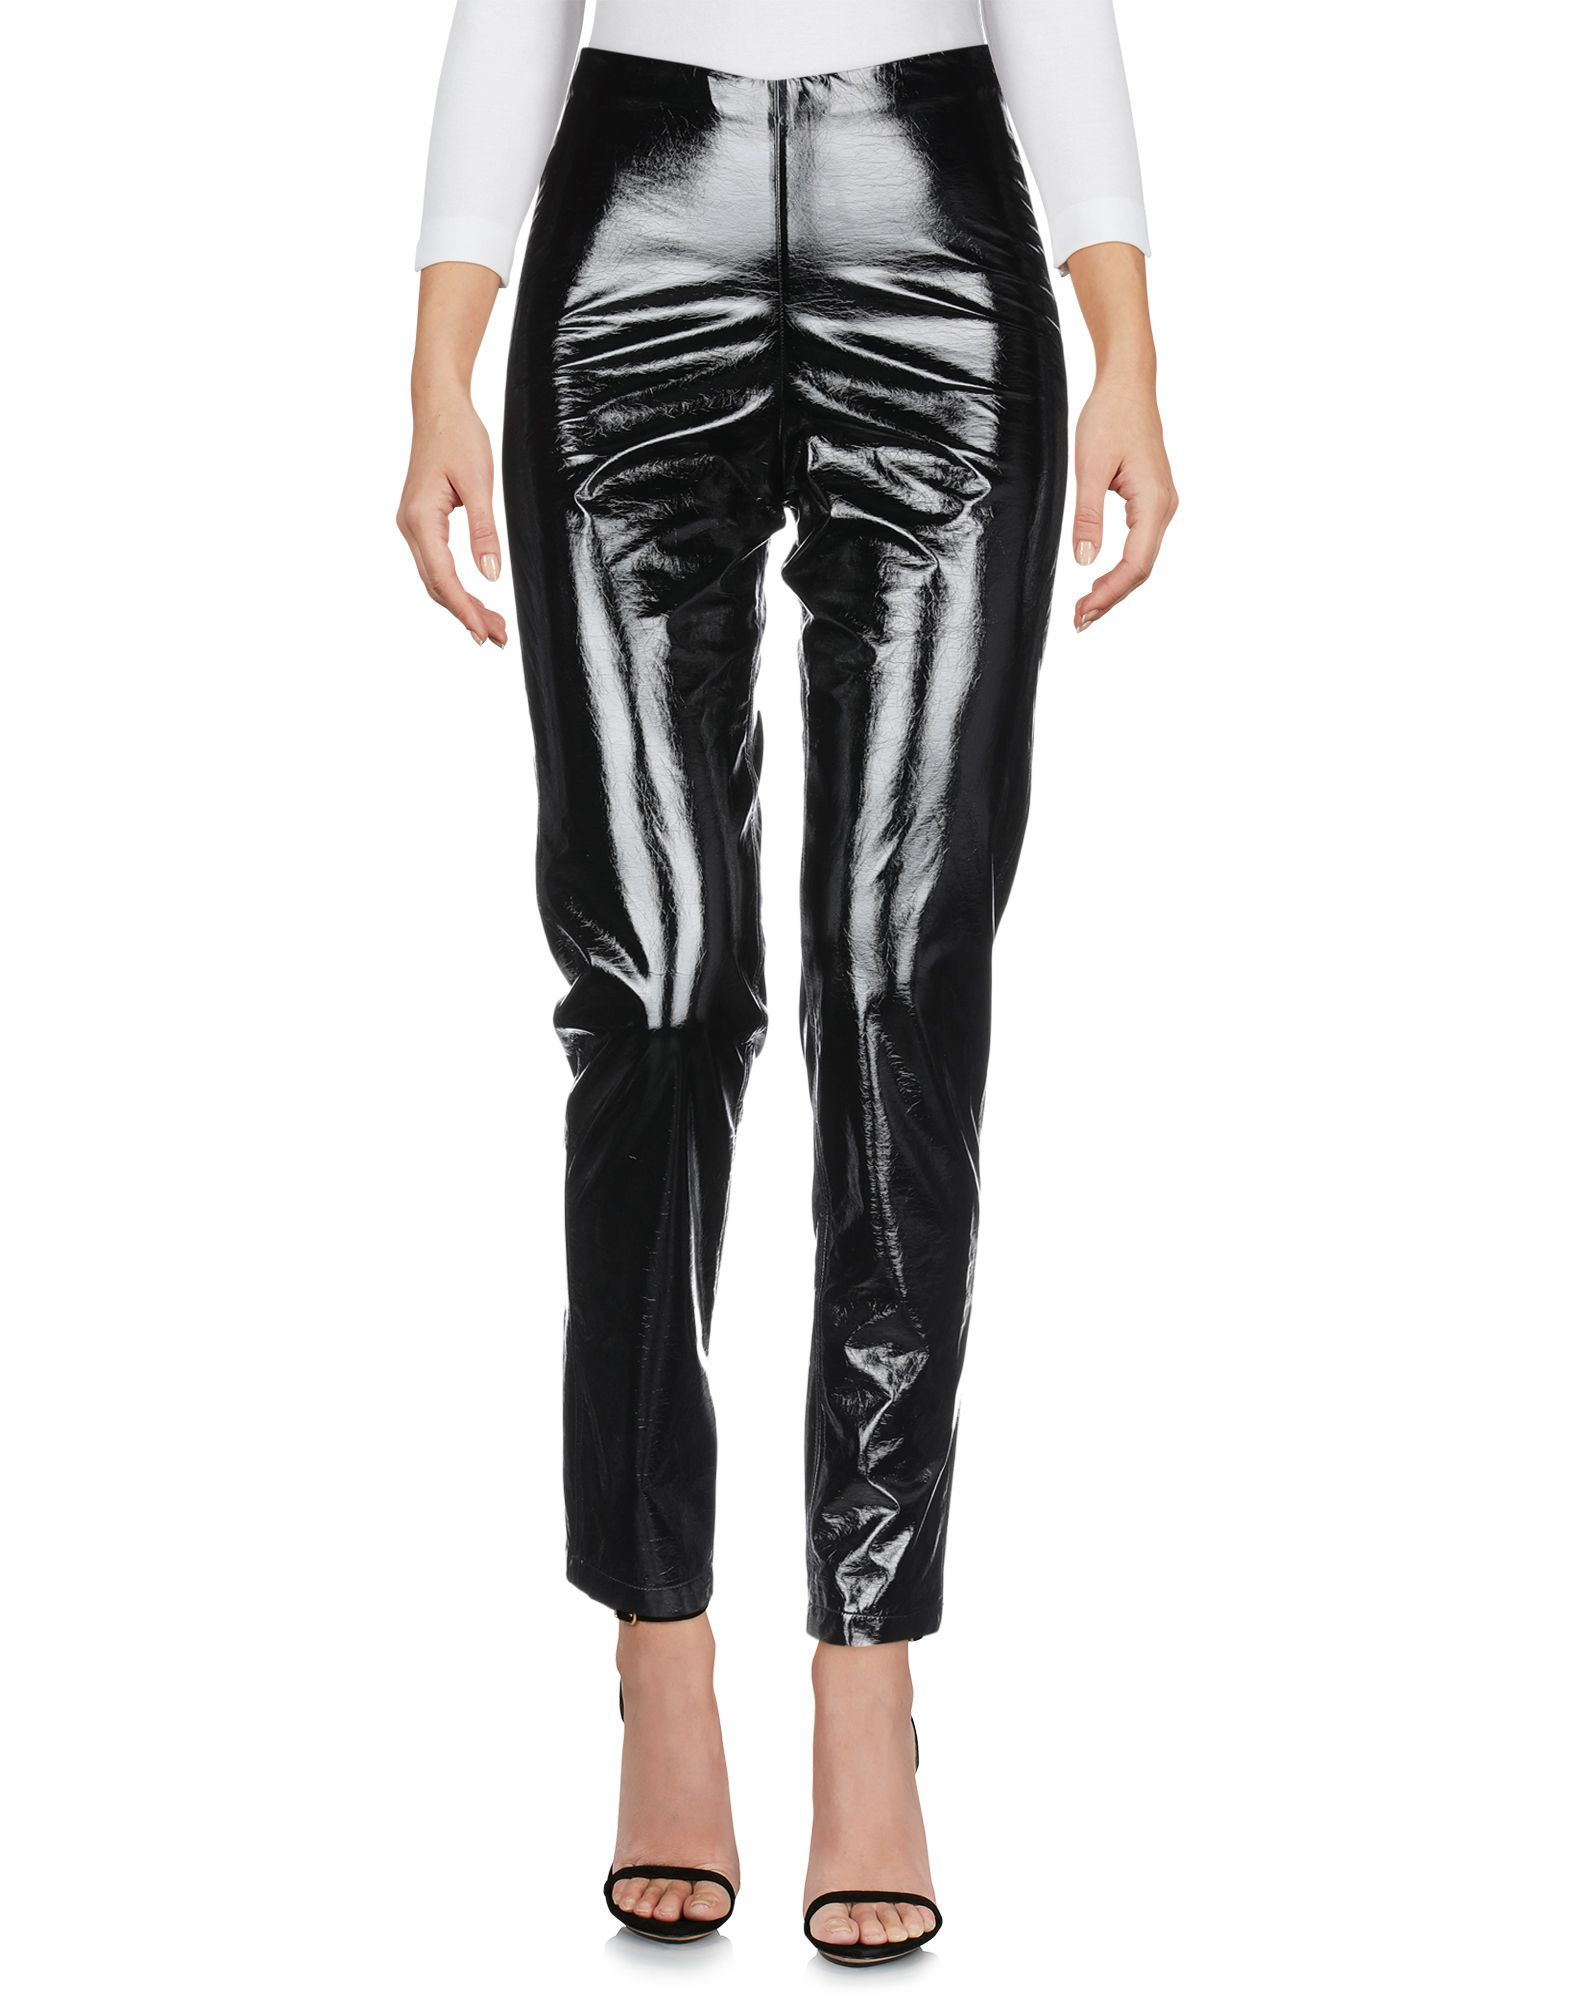 TROUSERS Federica Tosi Black Woman Polyester